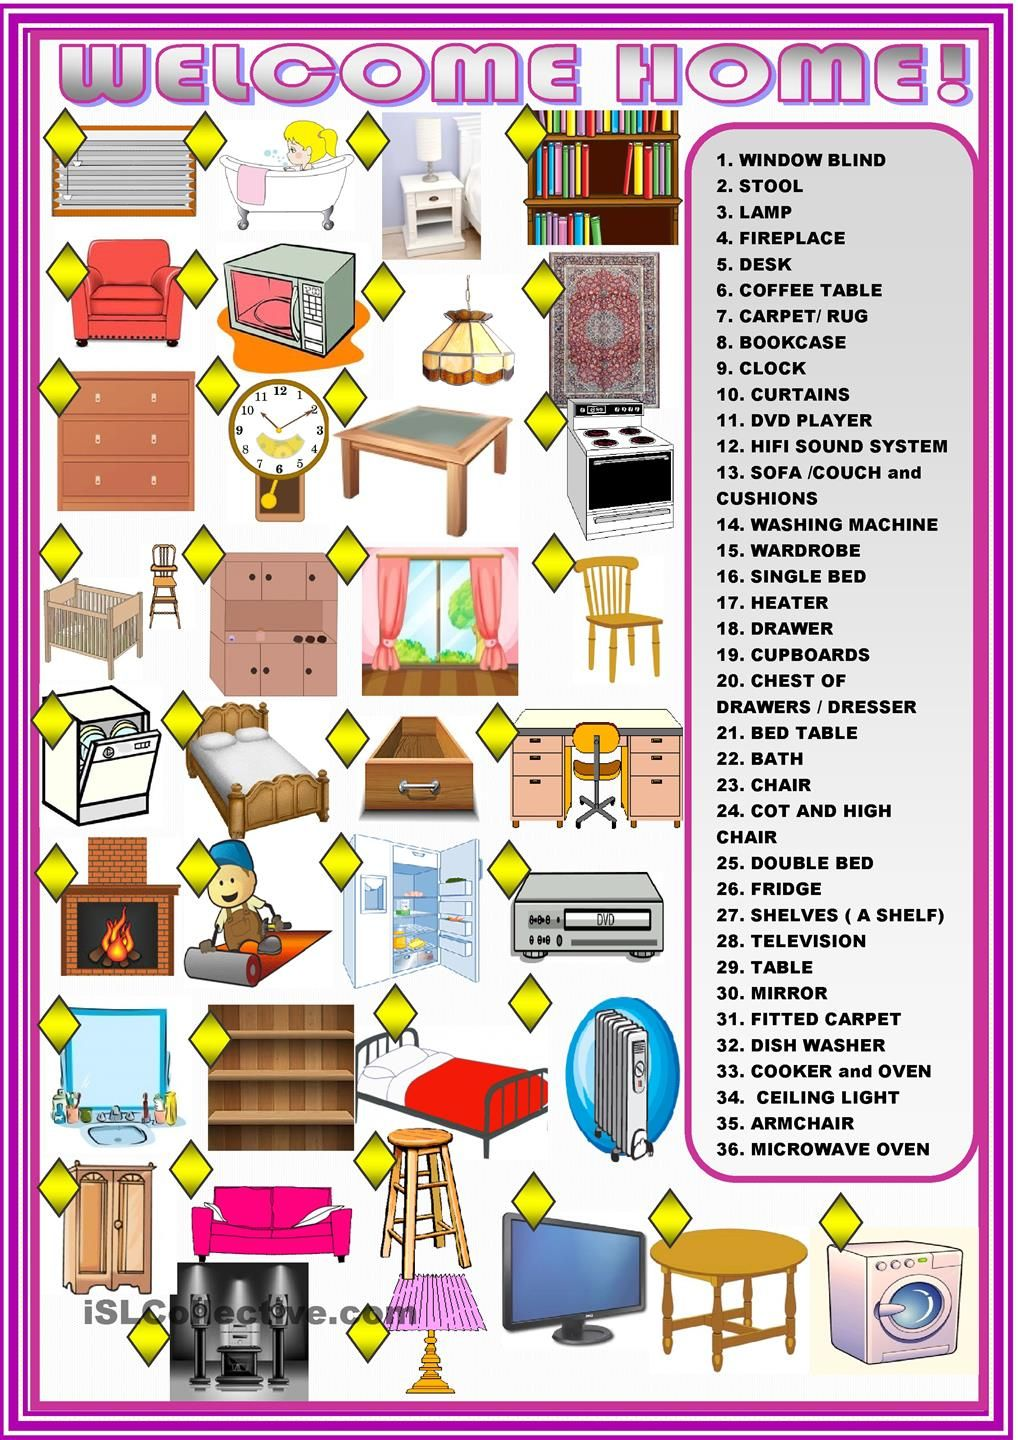 Welcome Home Furniture Matching Activity English Vocabulary  # Muebles Worksheet